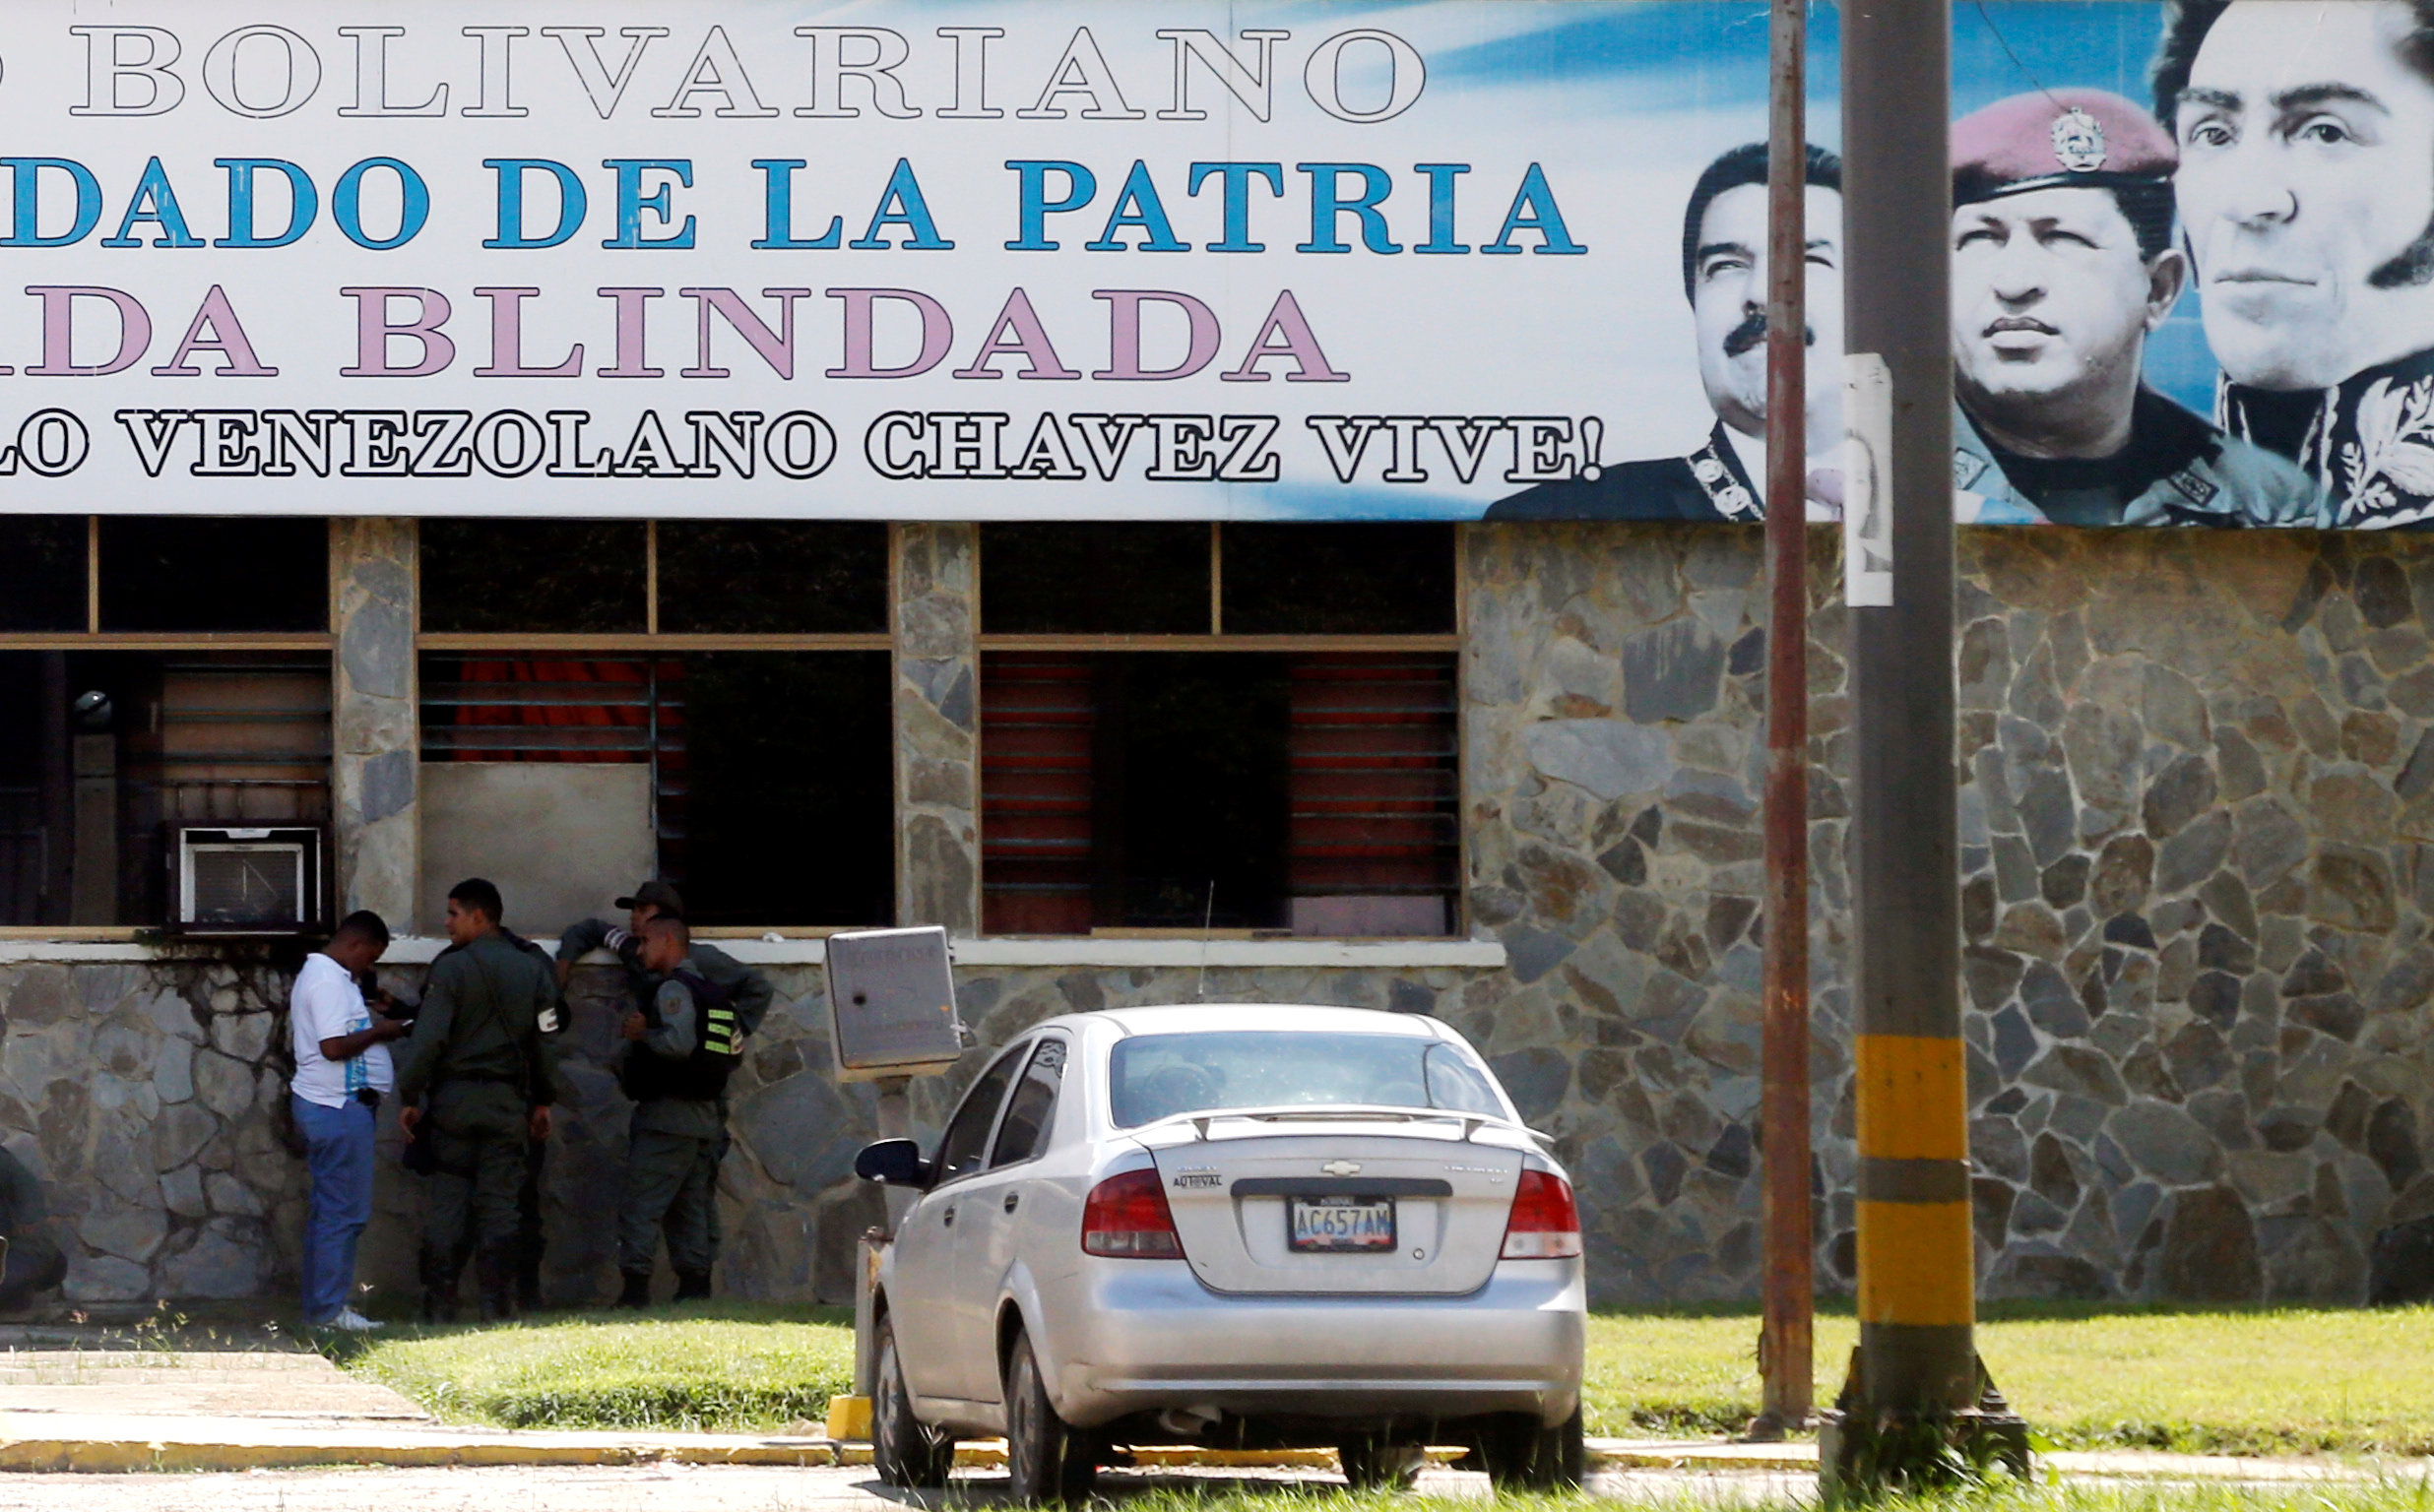 Members of security forces stand beneath a sign with portraits of Venezuela's President Nicolas Maduro, former President Hugo Chavez and Venezuela's national hero Simon Bolivar outside the 41 Brigada Blindada Fuerte Paramacay military base in Valencia, Venezuela August 6, 2017. REUTERS/Andres Martinez Casares